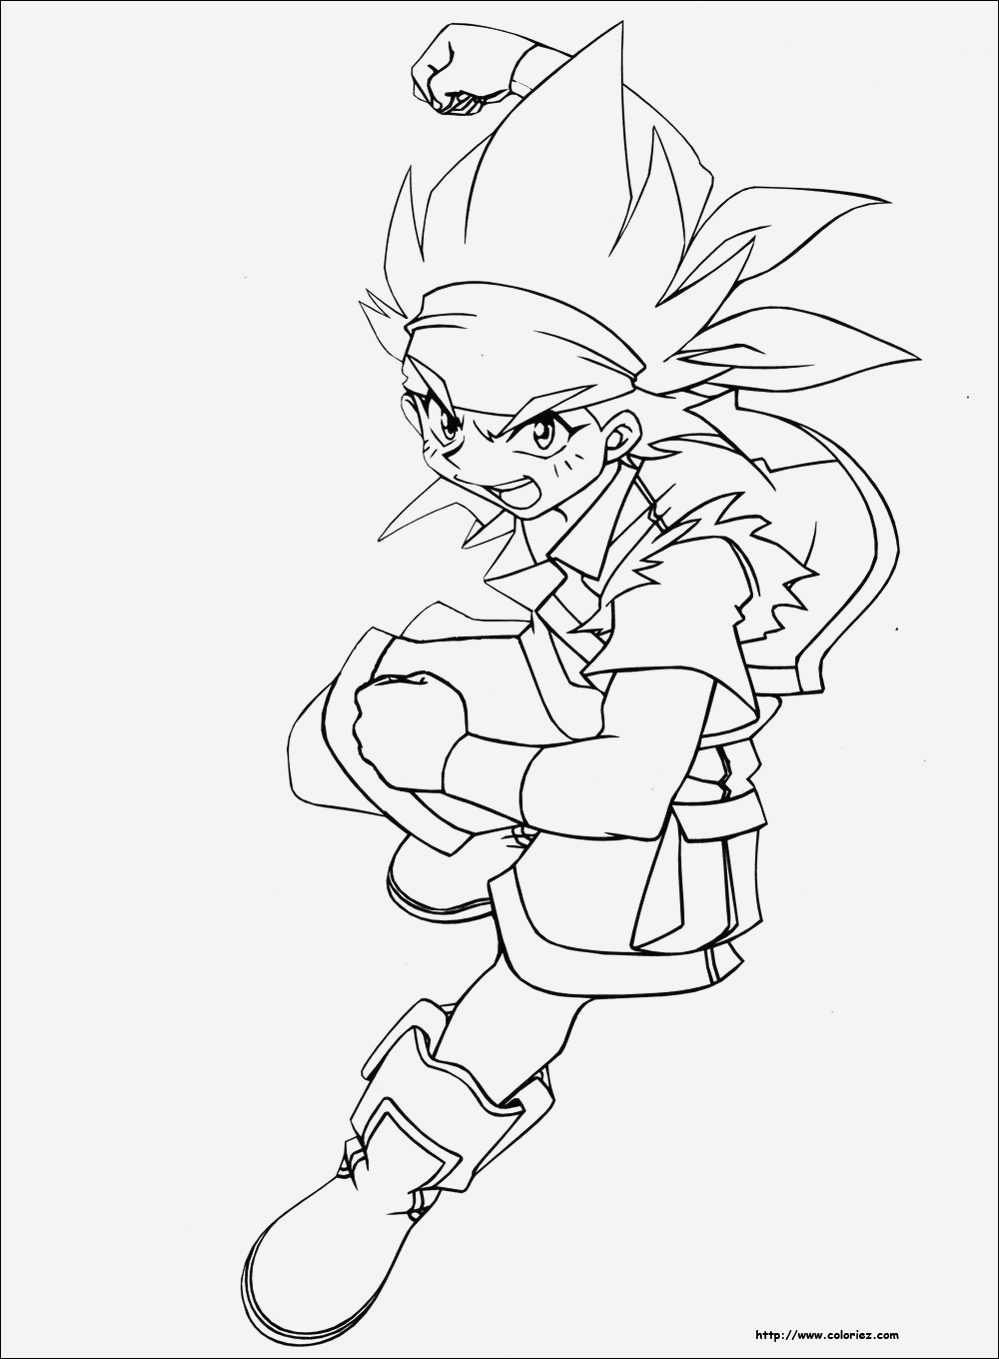 Coloriage Beyblade Burst Turbo Inspirational Coloriage Beyblade Burst Turbo Valt Coloriage Ideas Of Coloriage Beyblade Burst Turbo